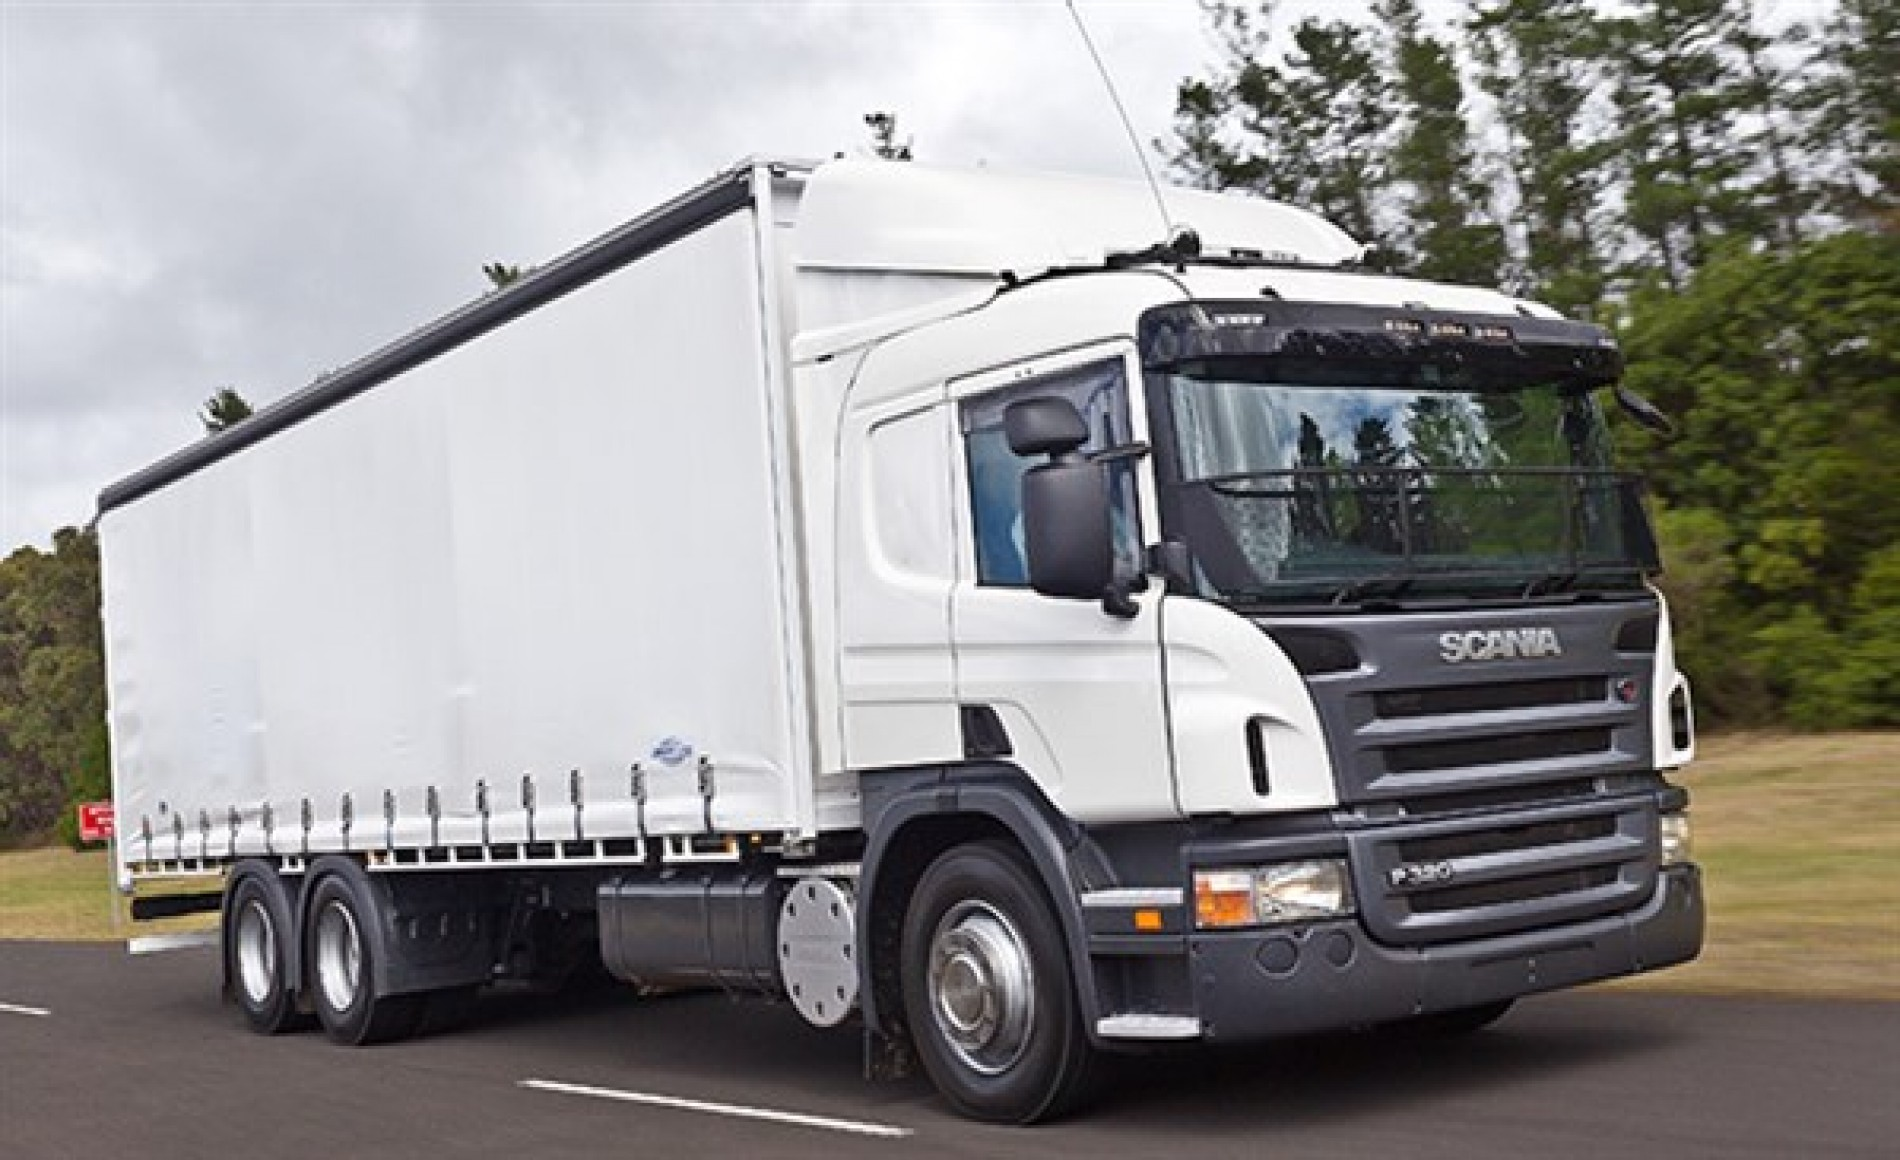 HC Local driver needed for ongoing assignment based out of Minchinbury